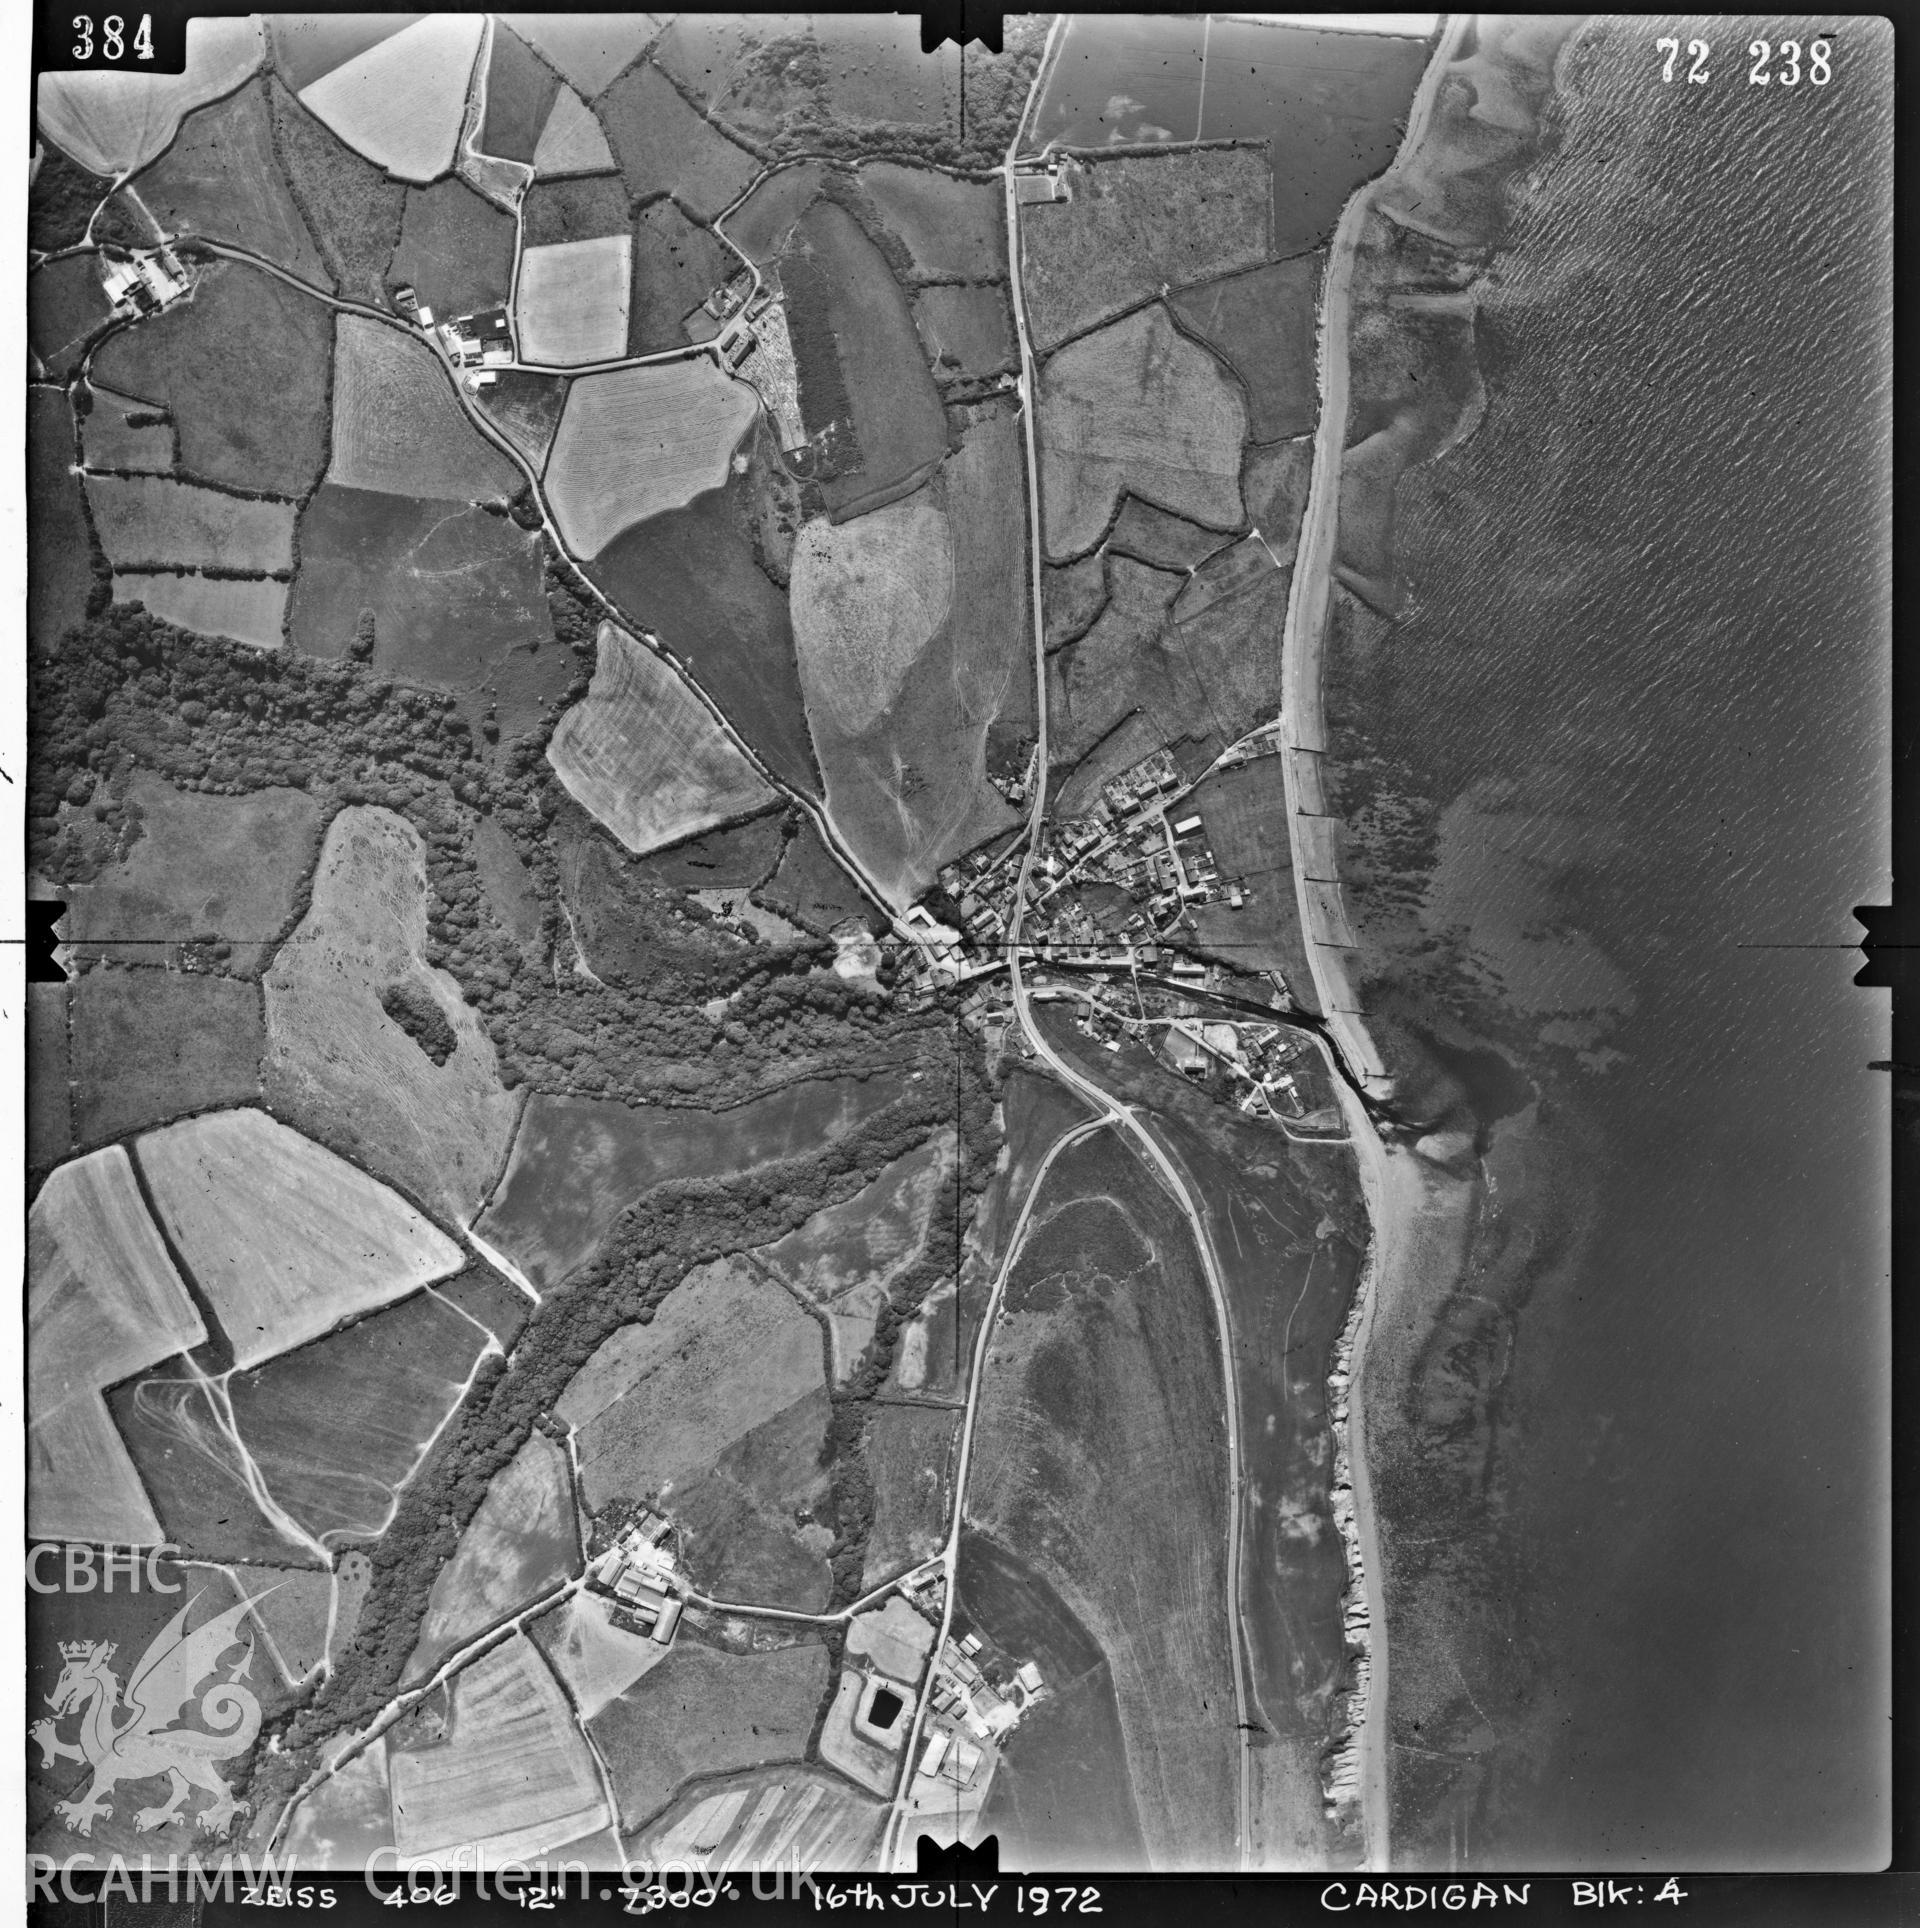 Digitized copy of an aerial photograph showing Aberaeron area, taken by Ordnance Survey, 1972.